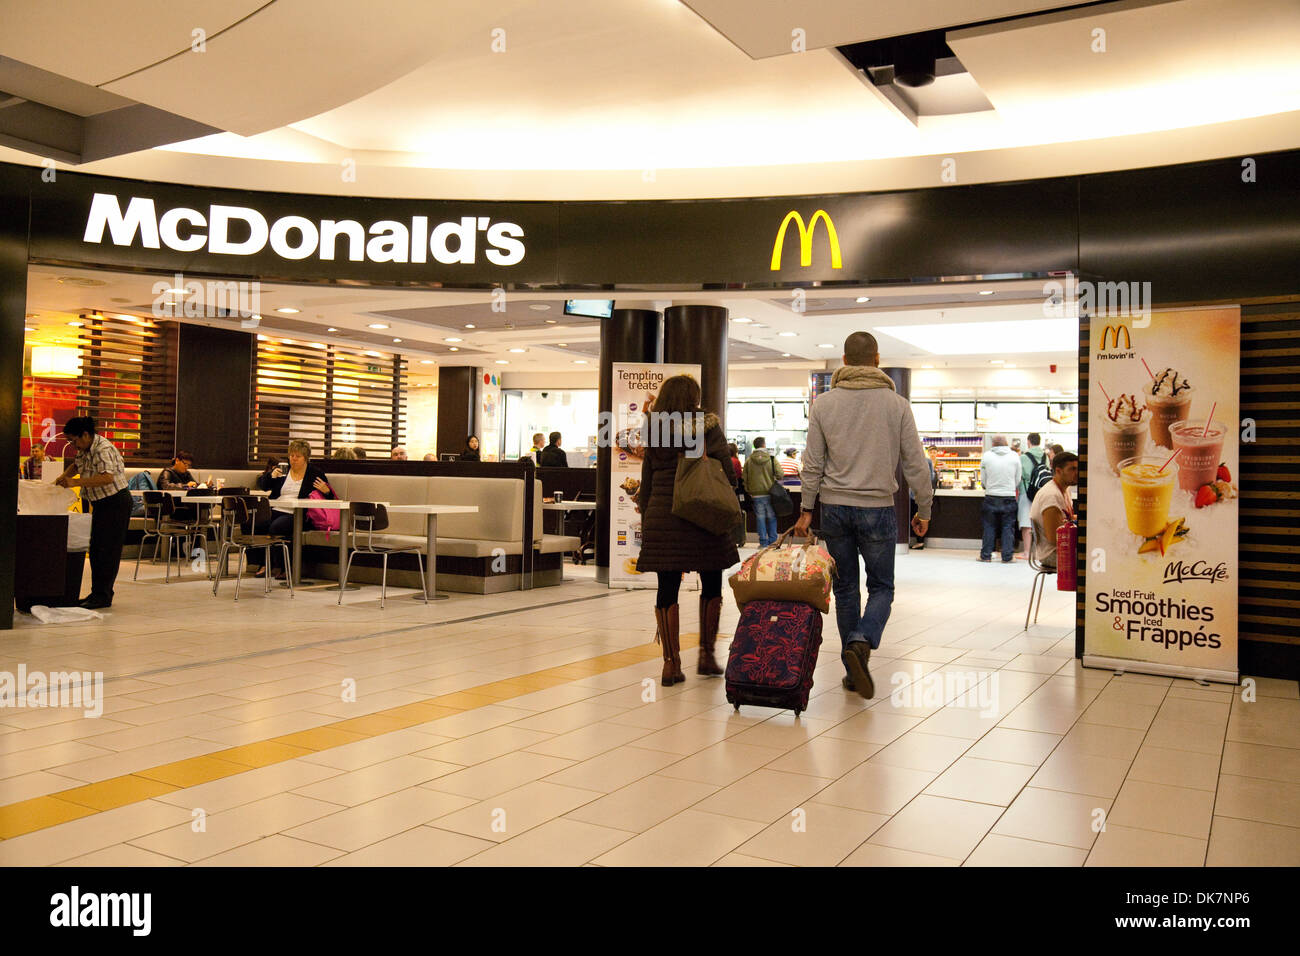 McDonalds restaurant at the South terminal Gatwick airport, UK - Stock Image